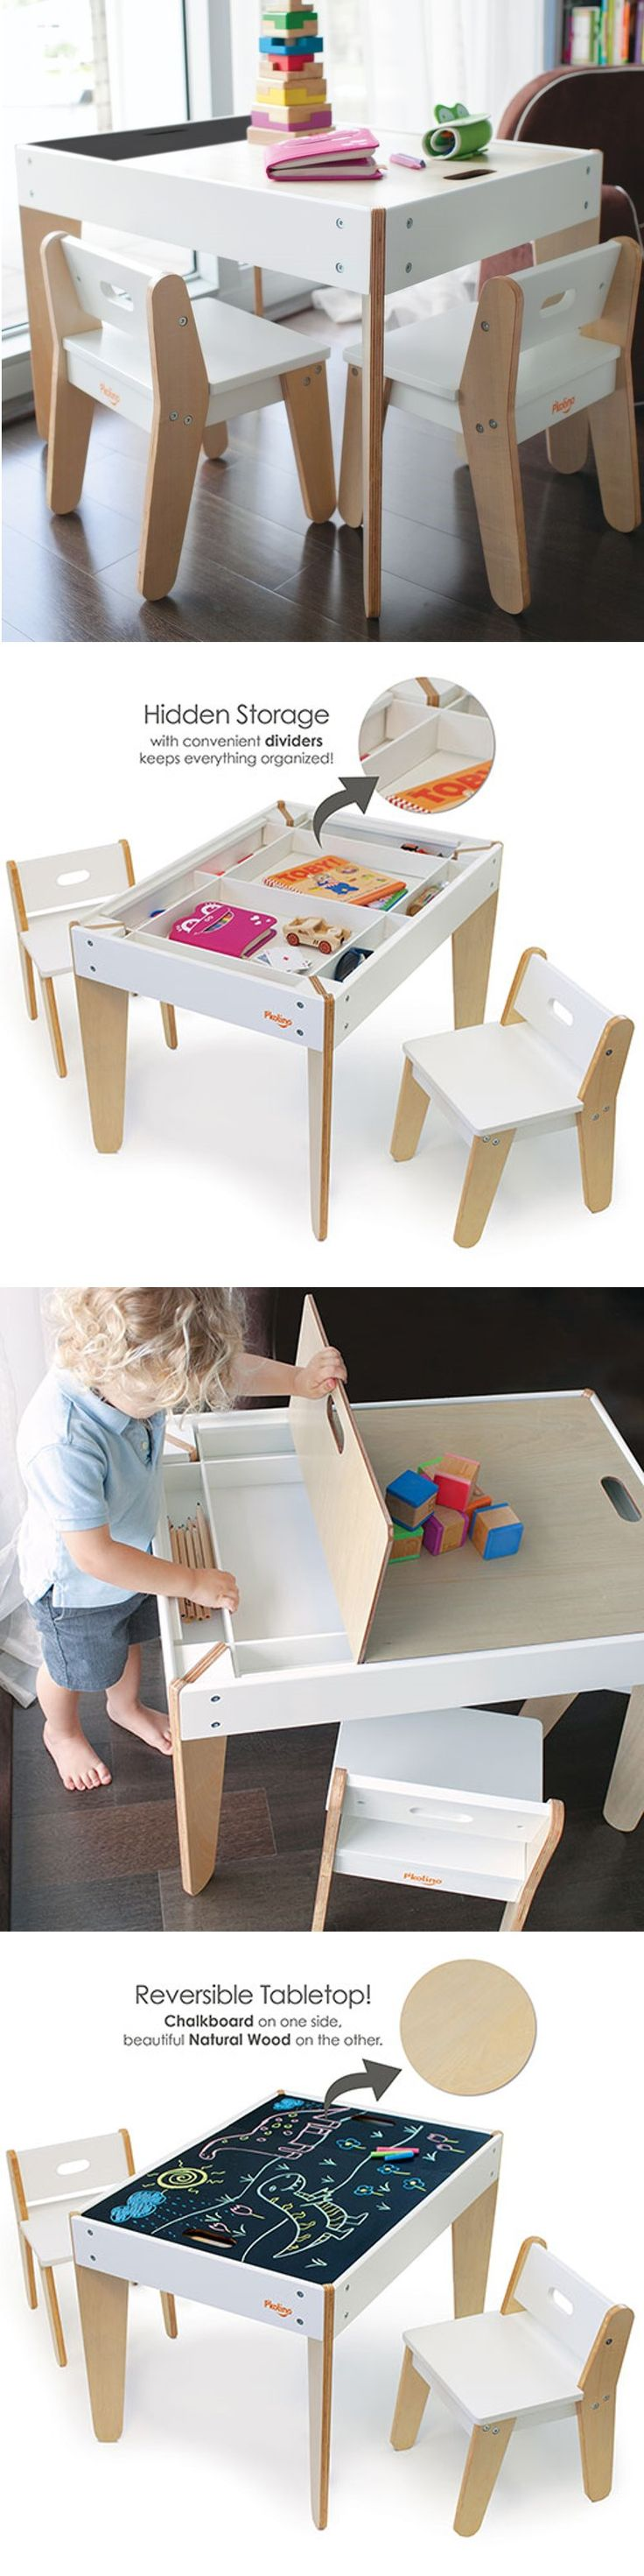 P'kolino Little Modern Children's Table with reversible top and built in storage compartment. This toddler table has reversible chalk table top (to quickly hide any mess) and two ergonomic child chairs. Playfully stylish design fits bedroom, playroom or family room. P'kolino meets or exceed US, EU, and Canadian safety standards.